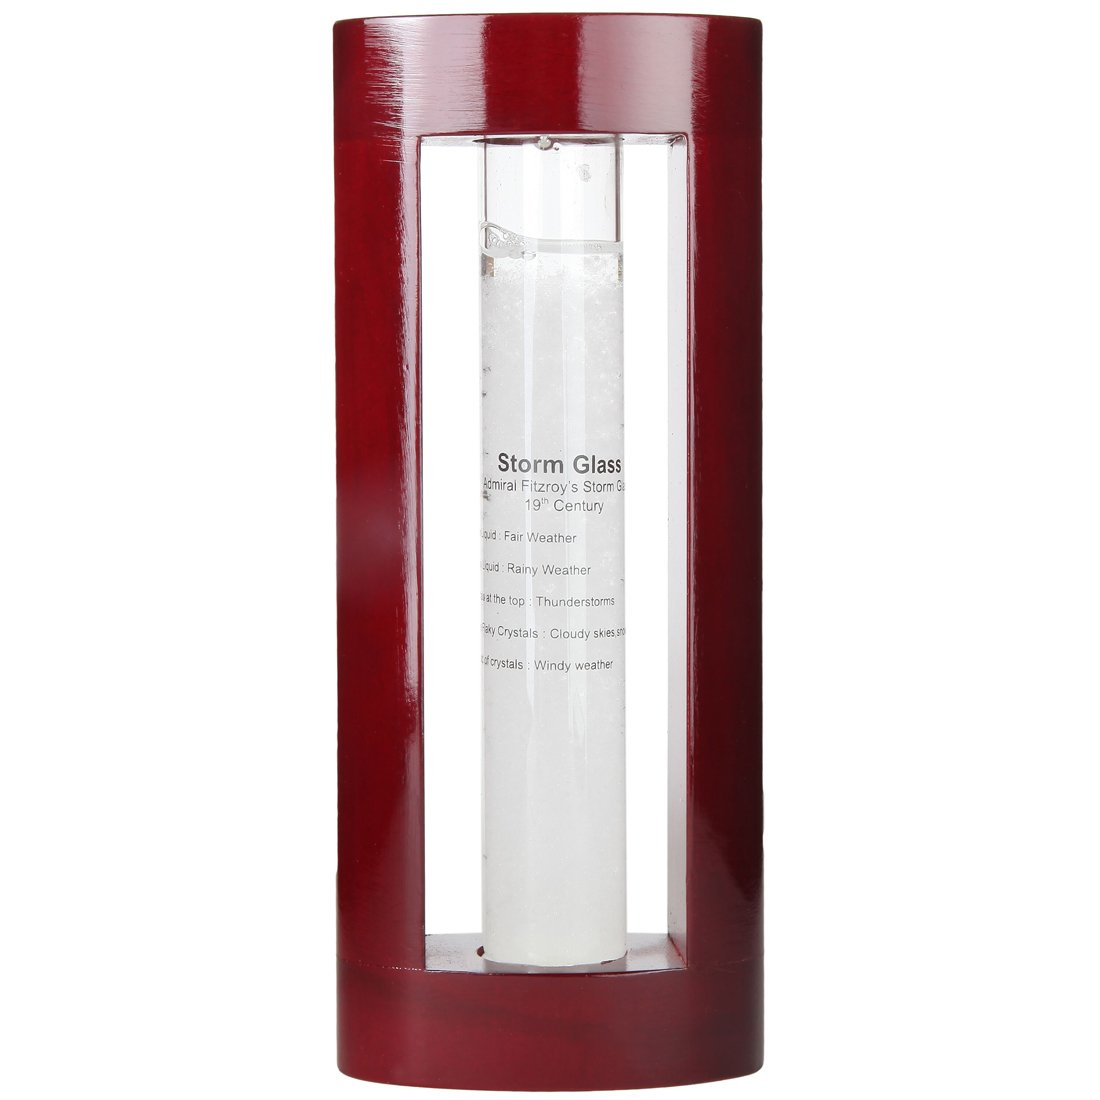 "Lily's Home Admiral FitzRoy's Storm Glass Weather Prediction Station, Predicts Weather Changes and Patterns, Elegant Gift and Desktop Piece, Includes Cherry Finished Wood Frame (7"" Tall)"